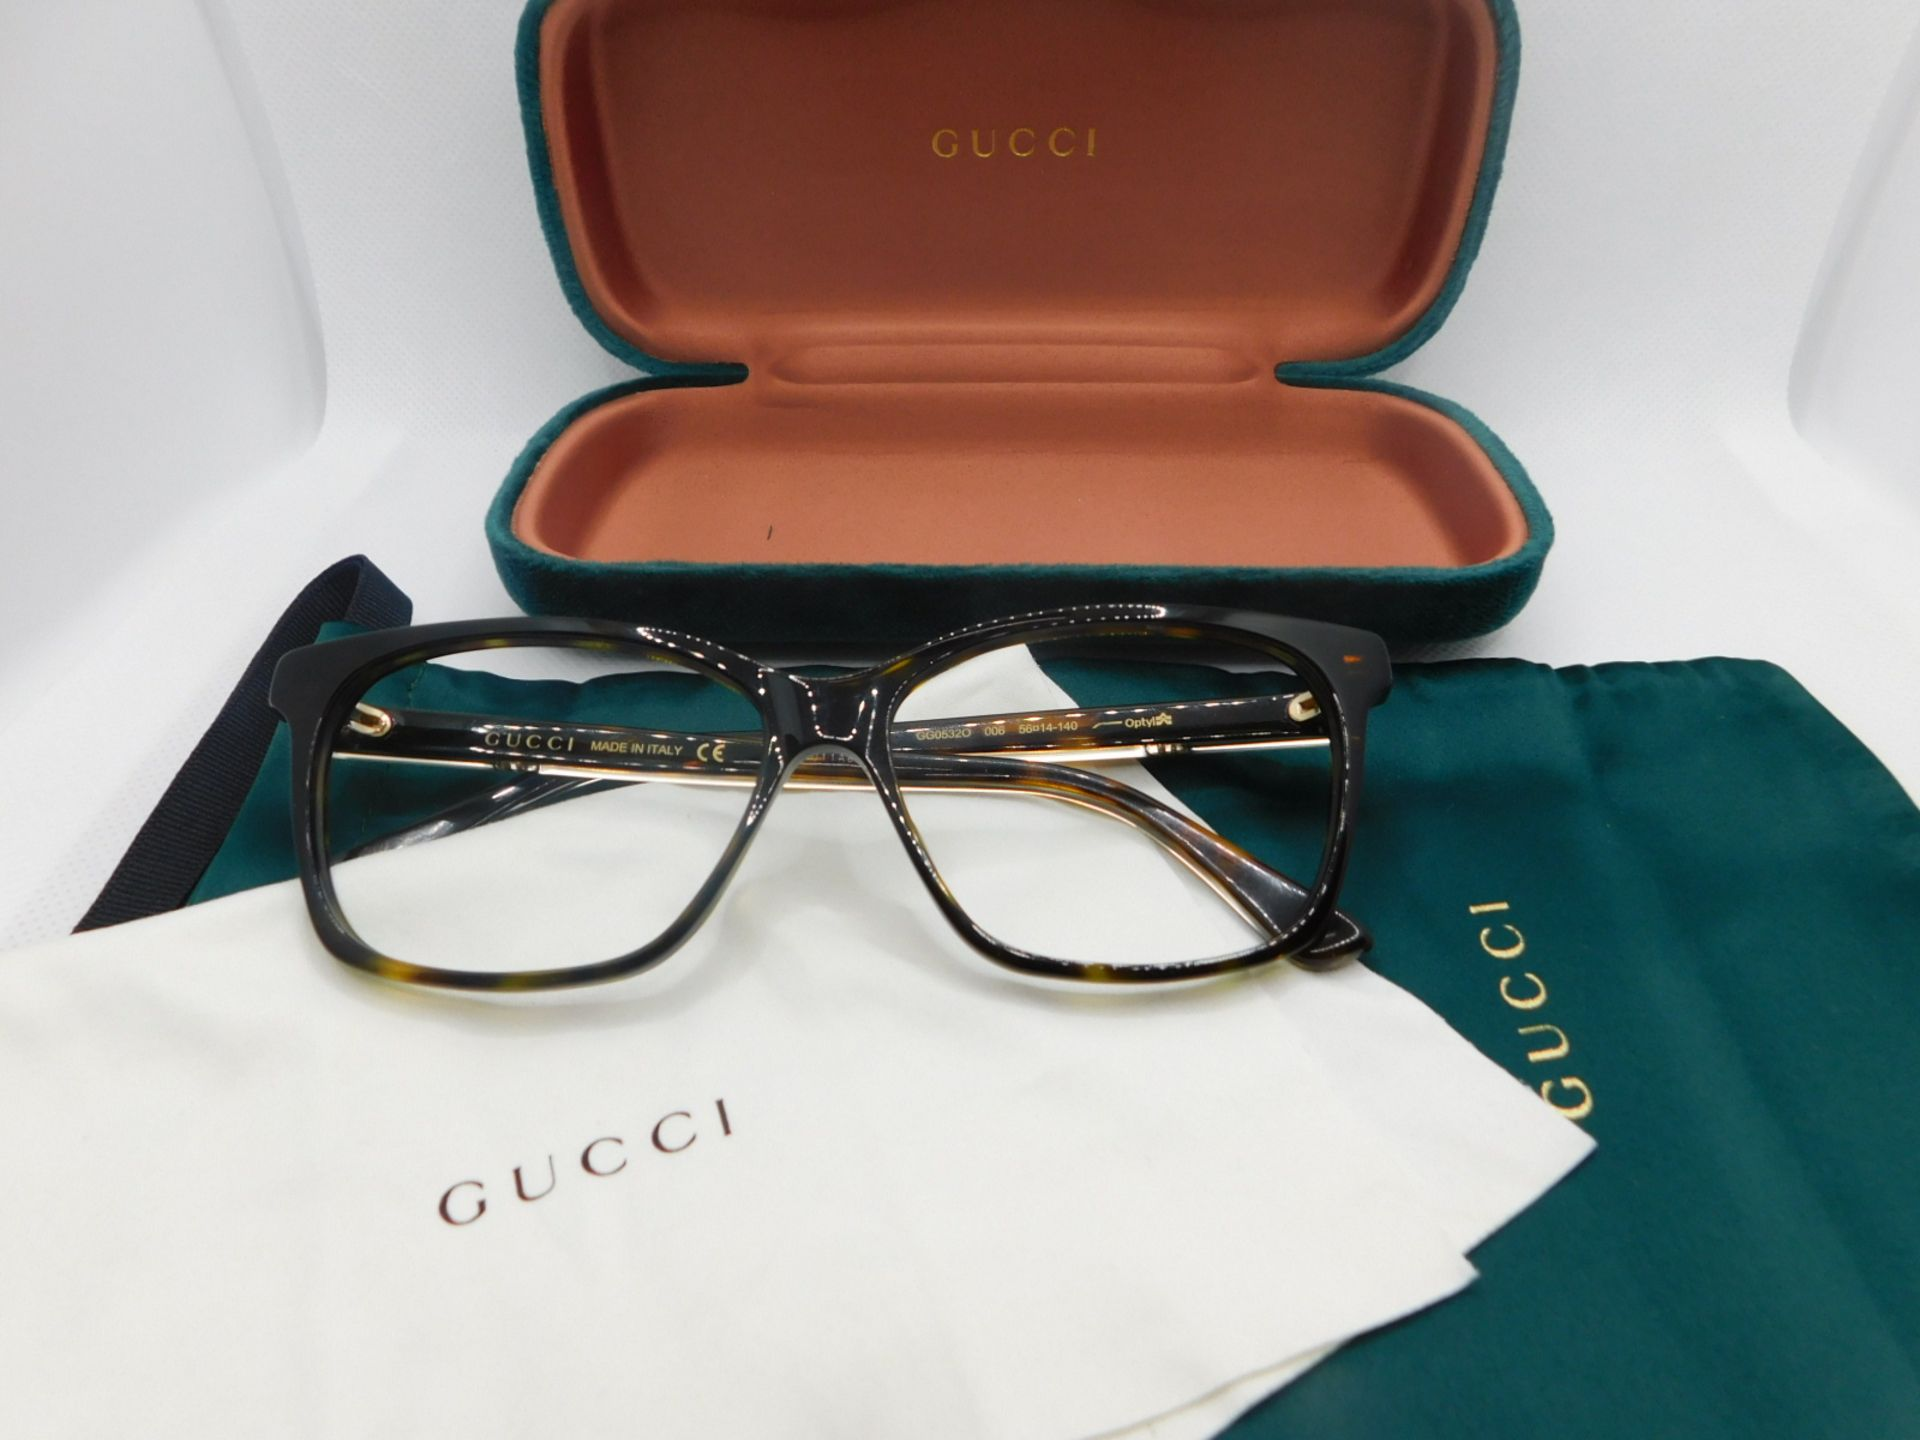 1 PAIR OF GUCCI LADIES GLASSES FRAME WITH CASE AND POUCH MODEL GG05320 RRP £199